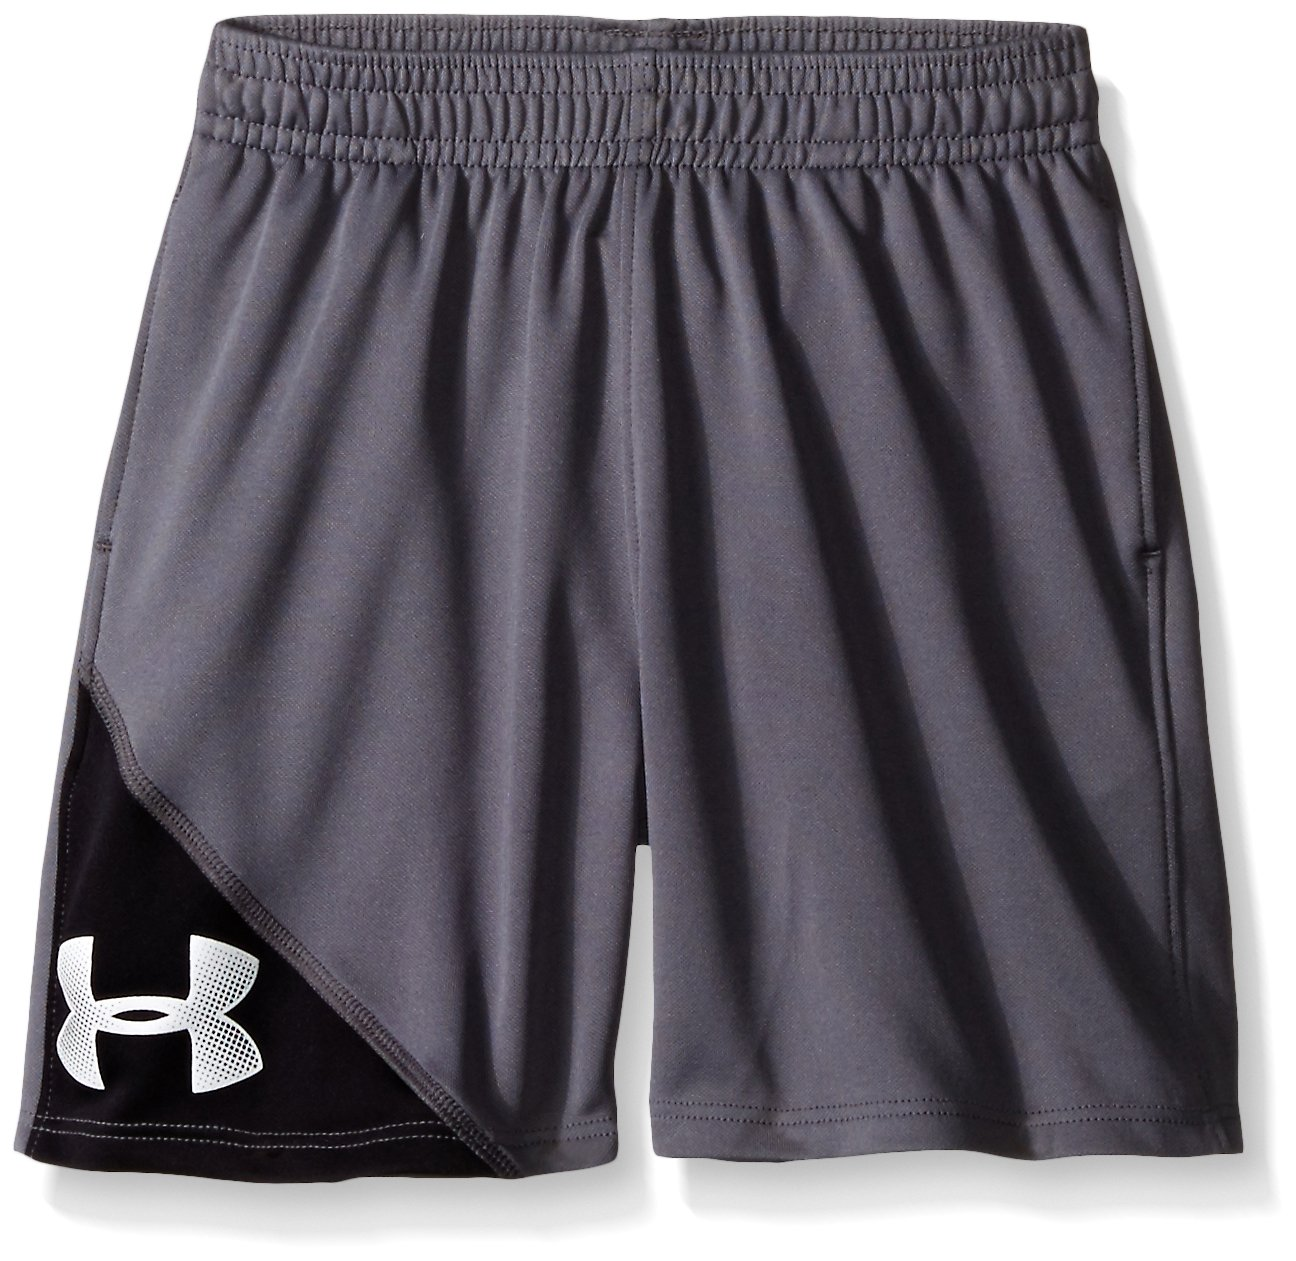 Under Armour Toddler Boys' Prototype Short, Graphite, 4T